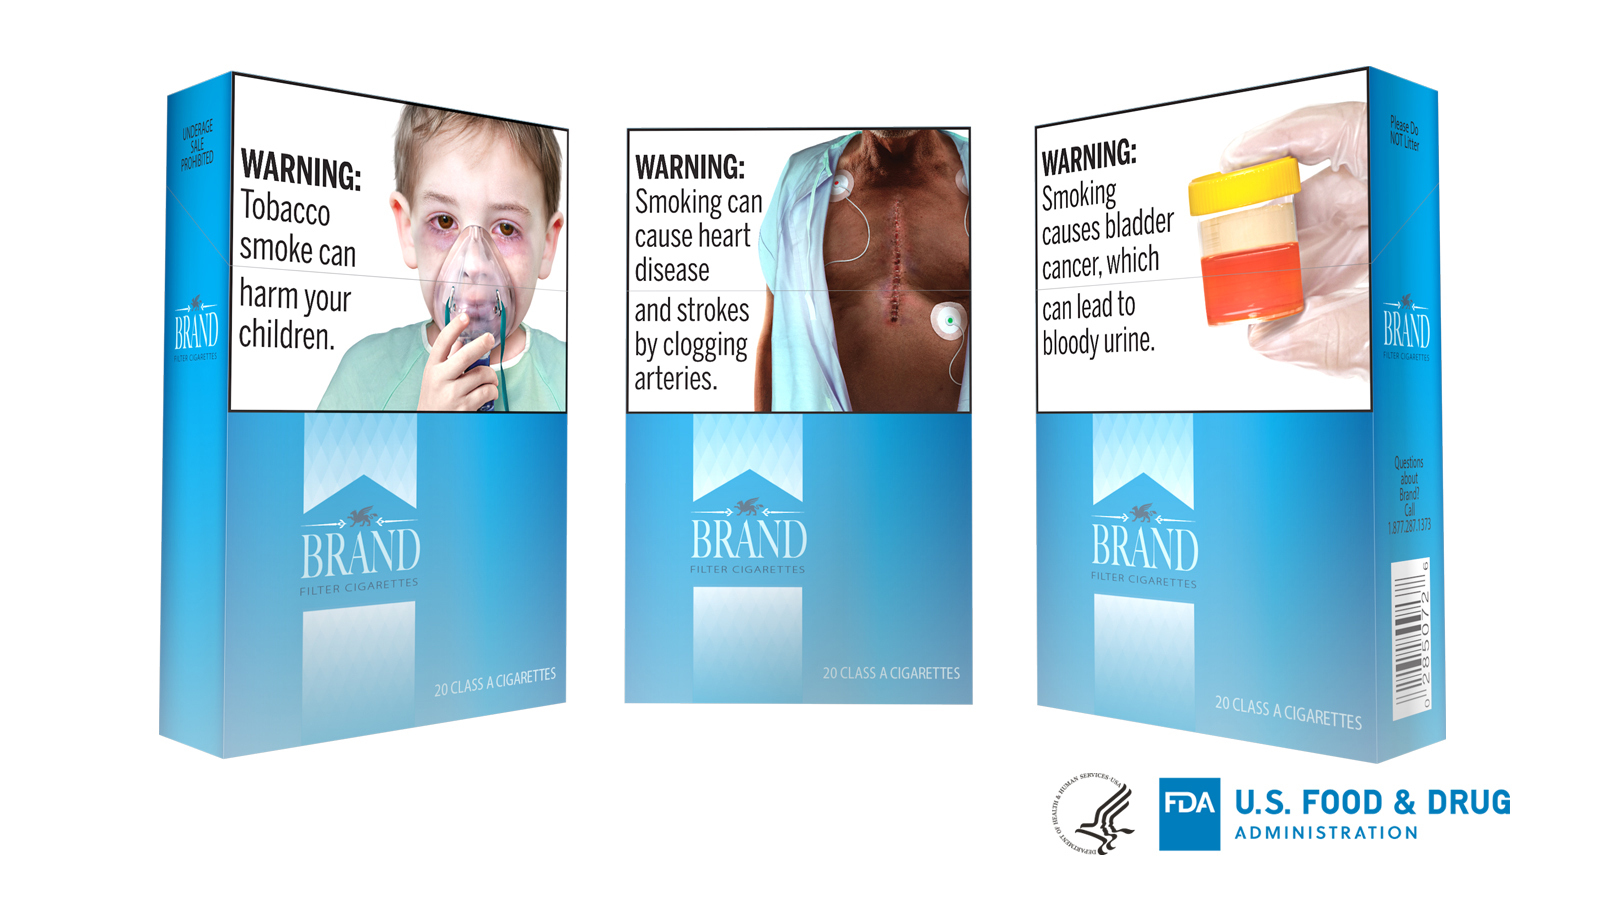 The FDA is proposing 13 new large, graphic warnings that would appear on all cigarettes, including images of cancerous tumors, diseased lungs and bloody urine.